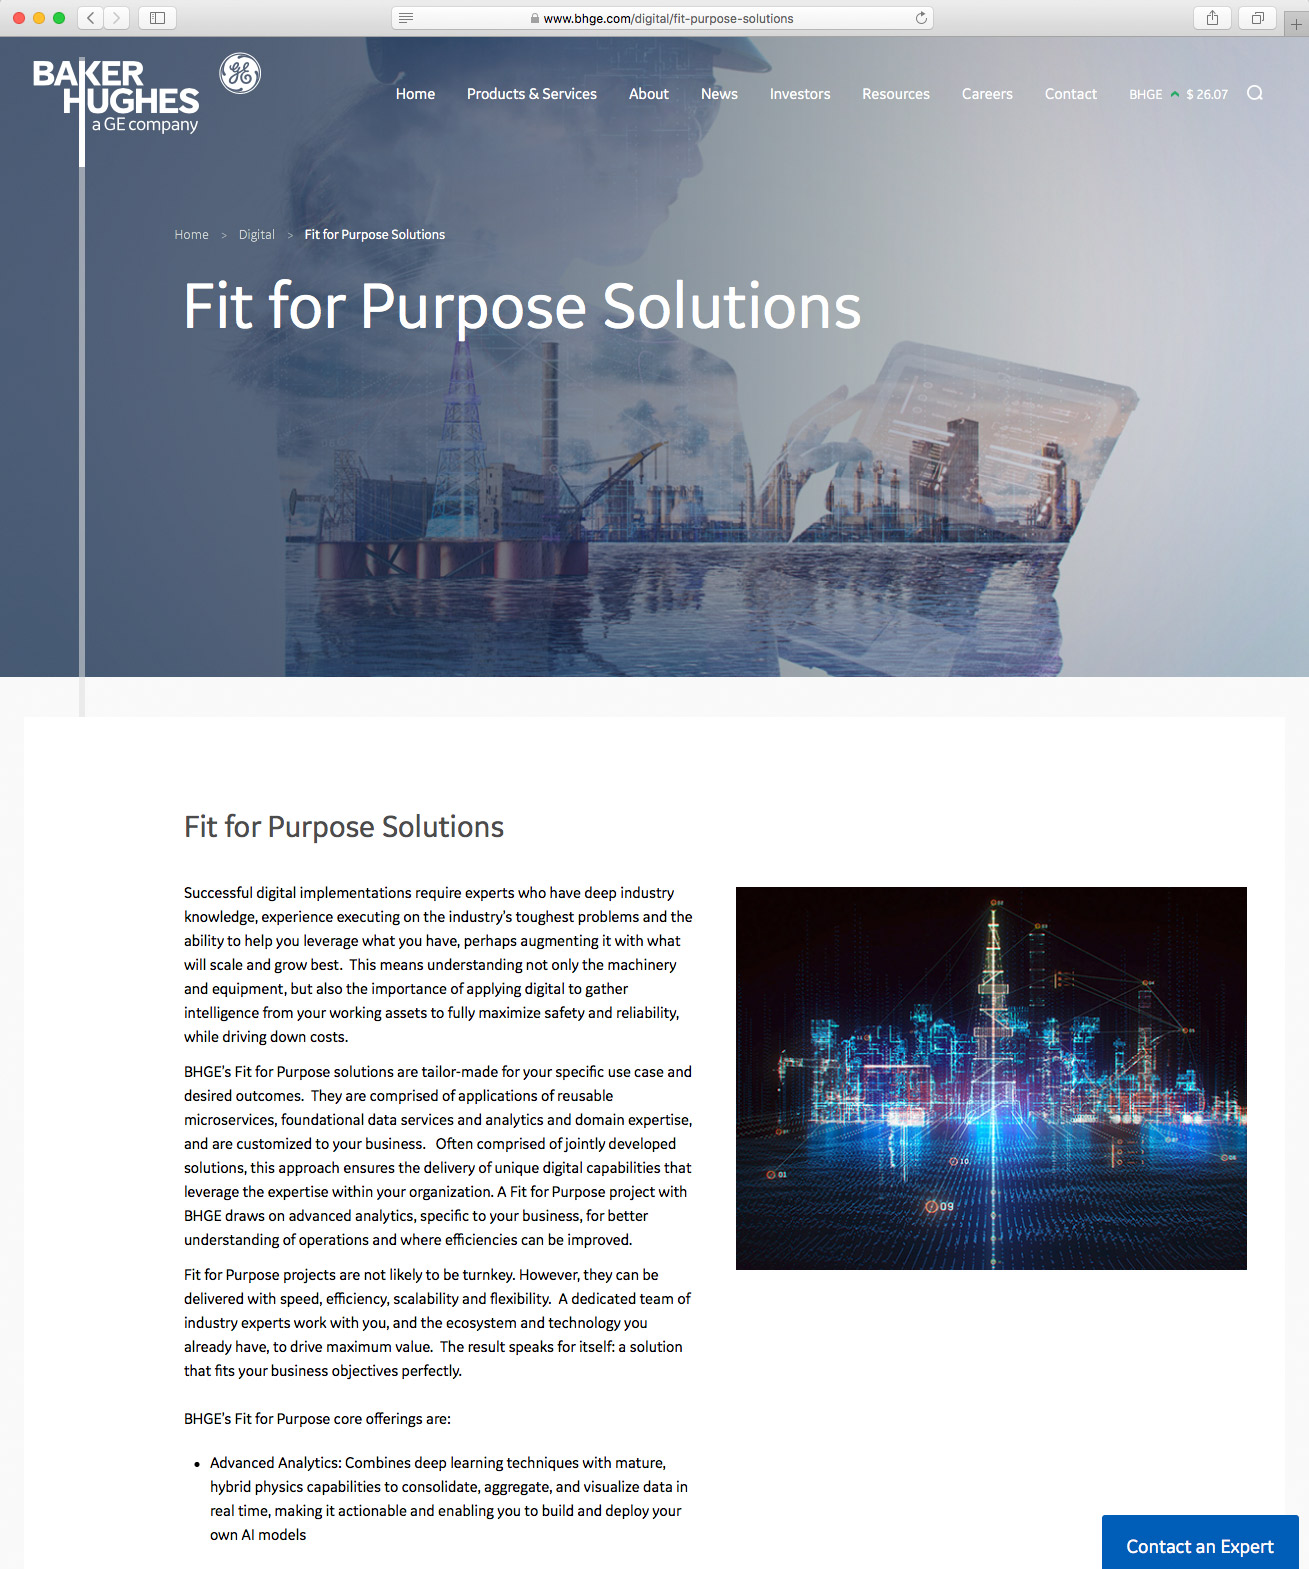 Fit for Purpose Solutions